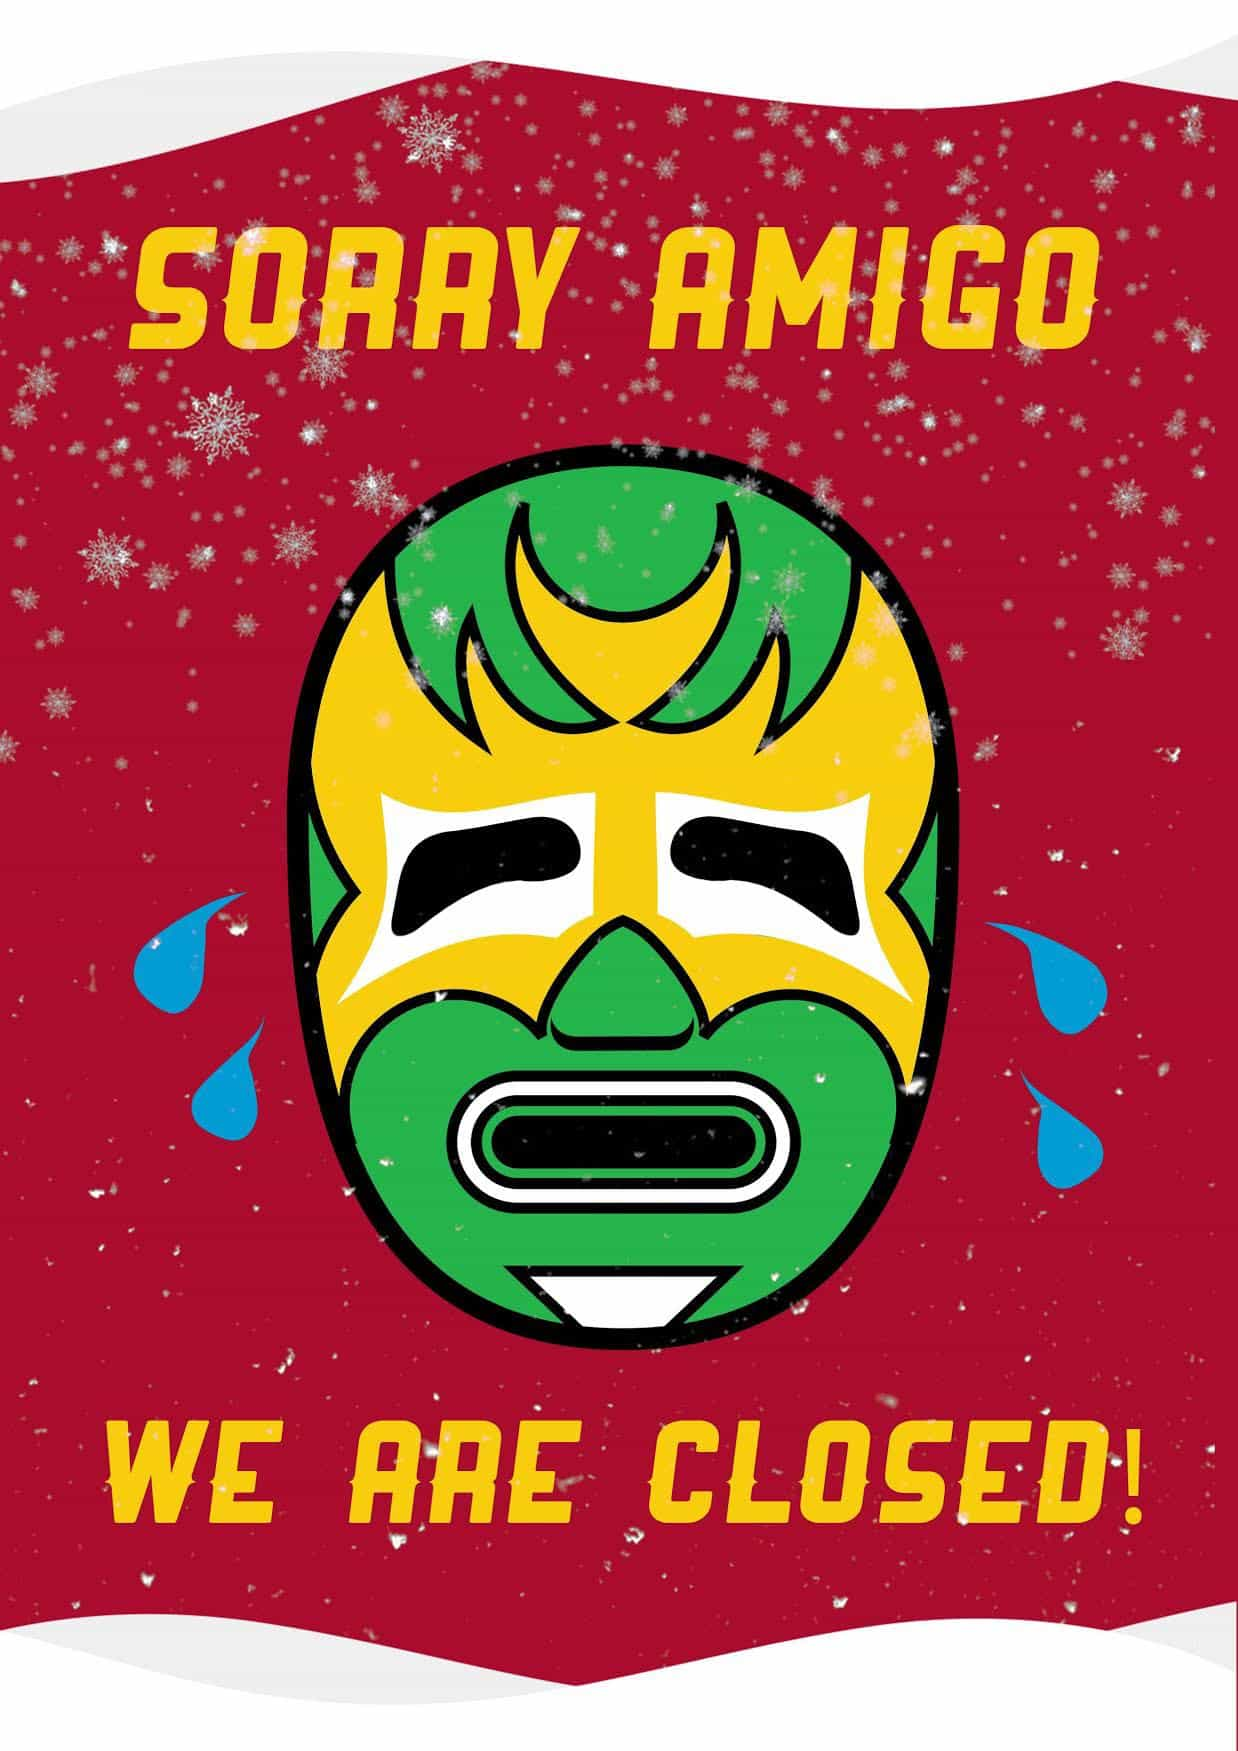 Sorry Amigo - Closed Sign